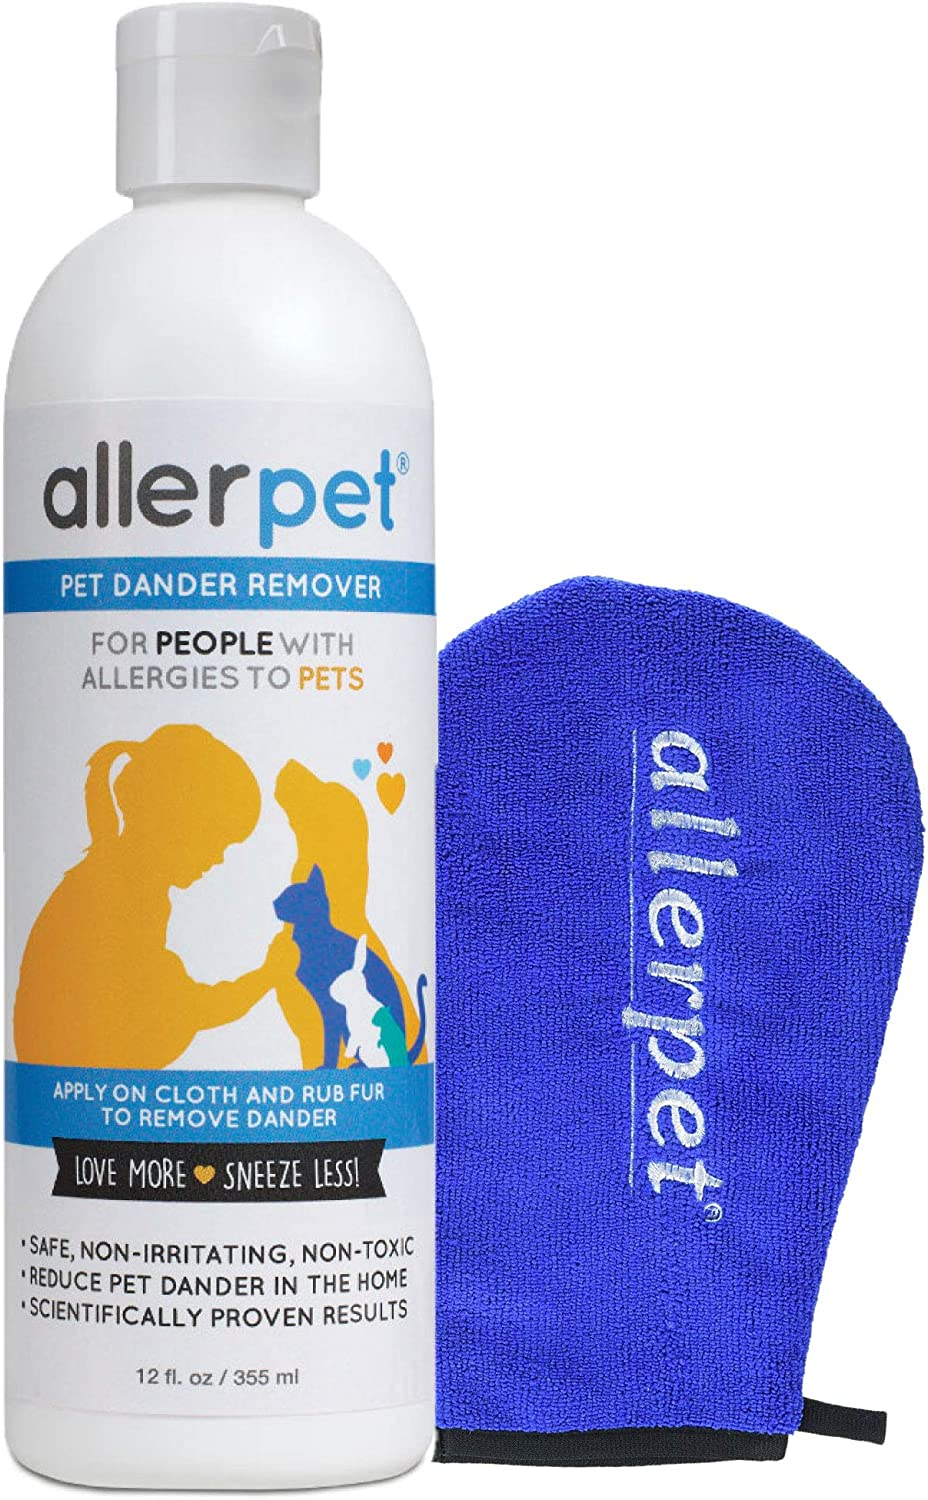 Allerpet Multi-Pet Dander Remover with Application Mitt - 100% Non-Toxic Dog & Cat Allergen Reducer - Scientifically Proven for Effective Allergy Relief for Any Pet - Proudly USA Made (12oz)